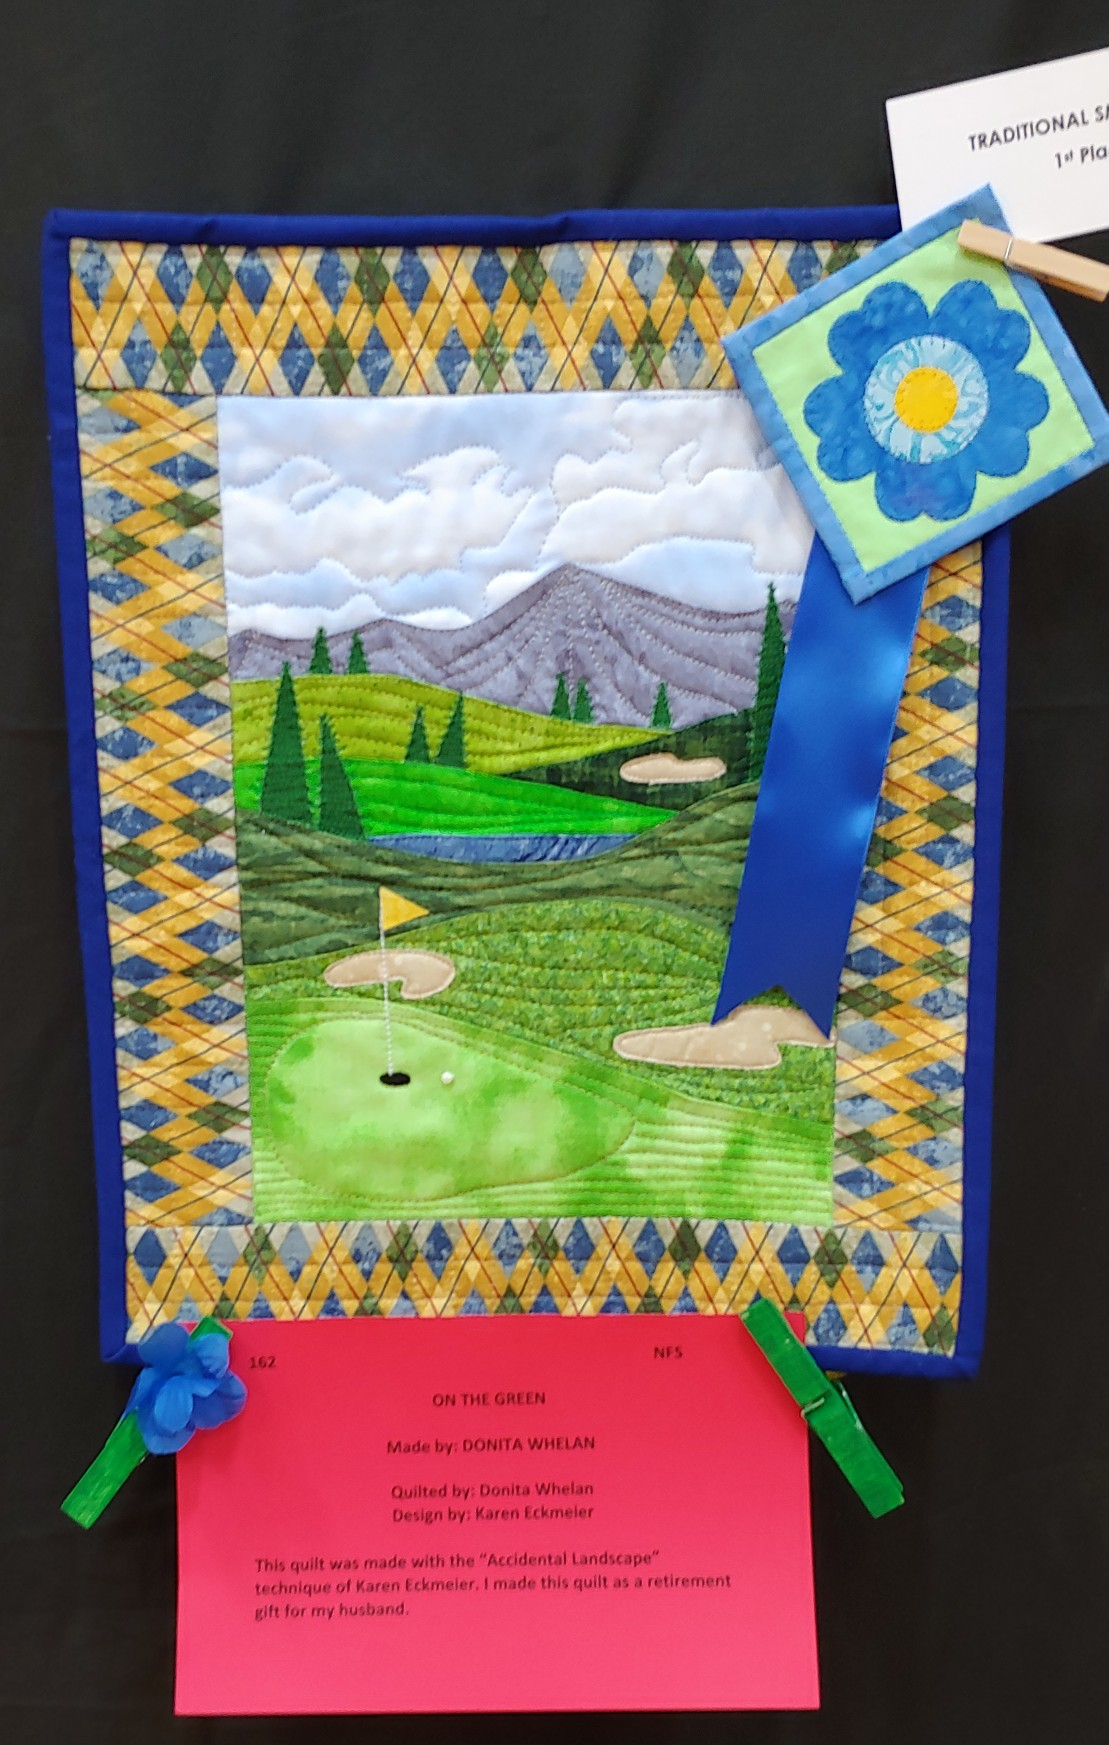 1st Place Traditional Small Quilt